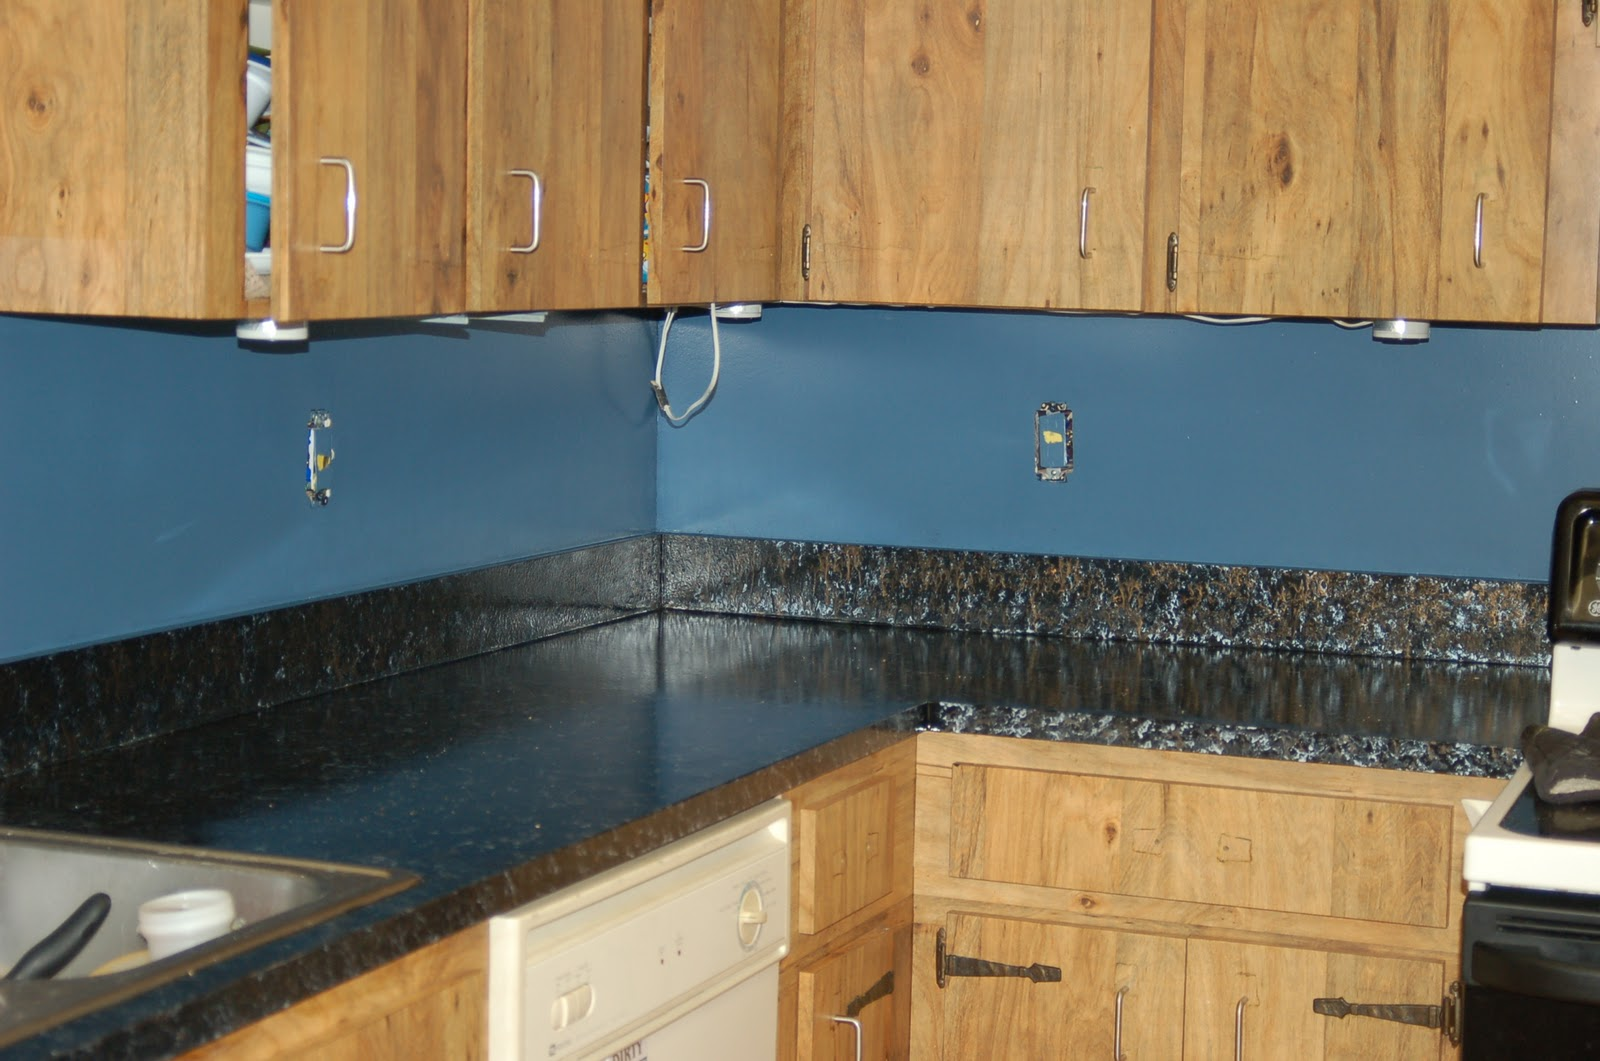 Giani Granite Paint Review! Remodel on a Budget! - Surviving A ...